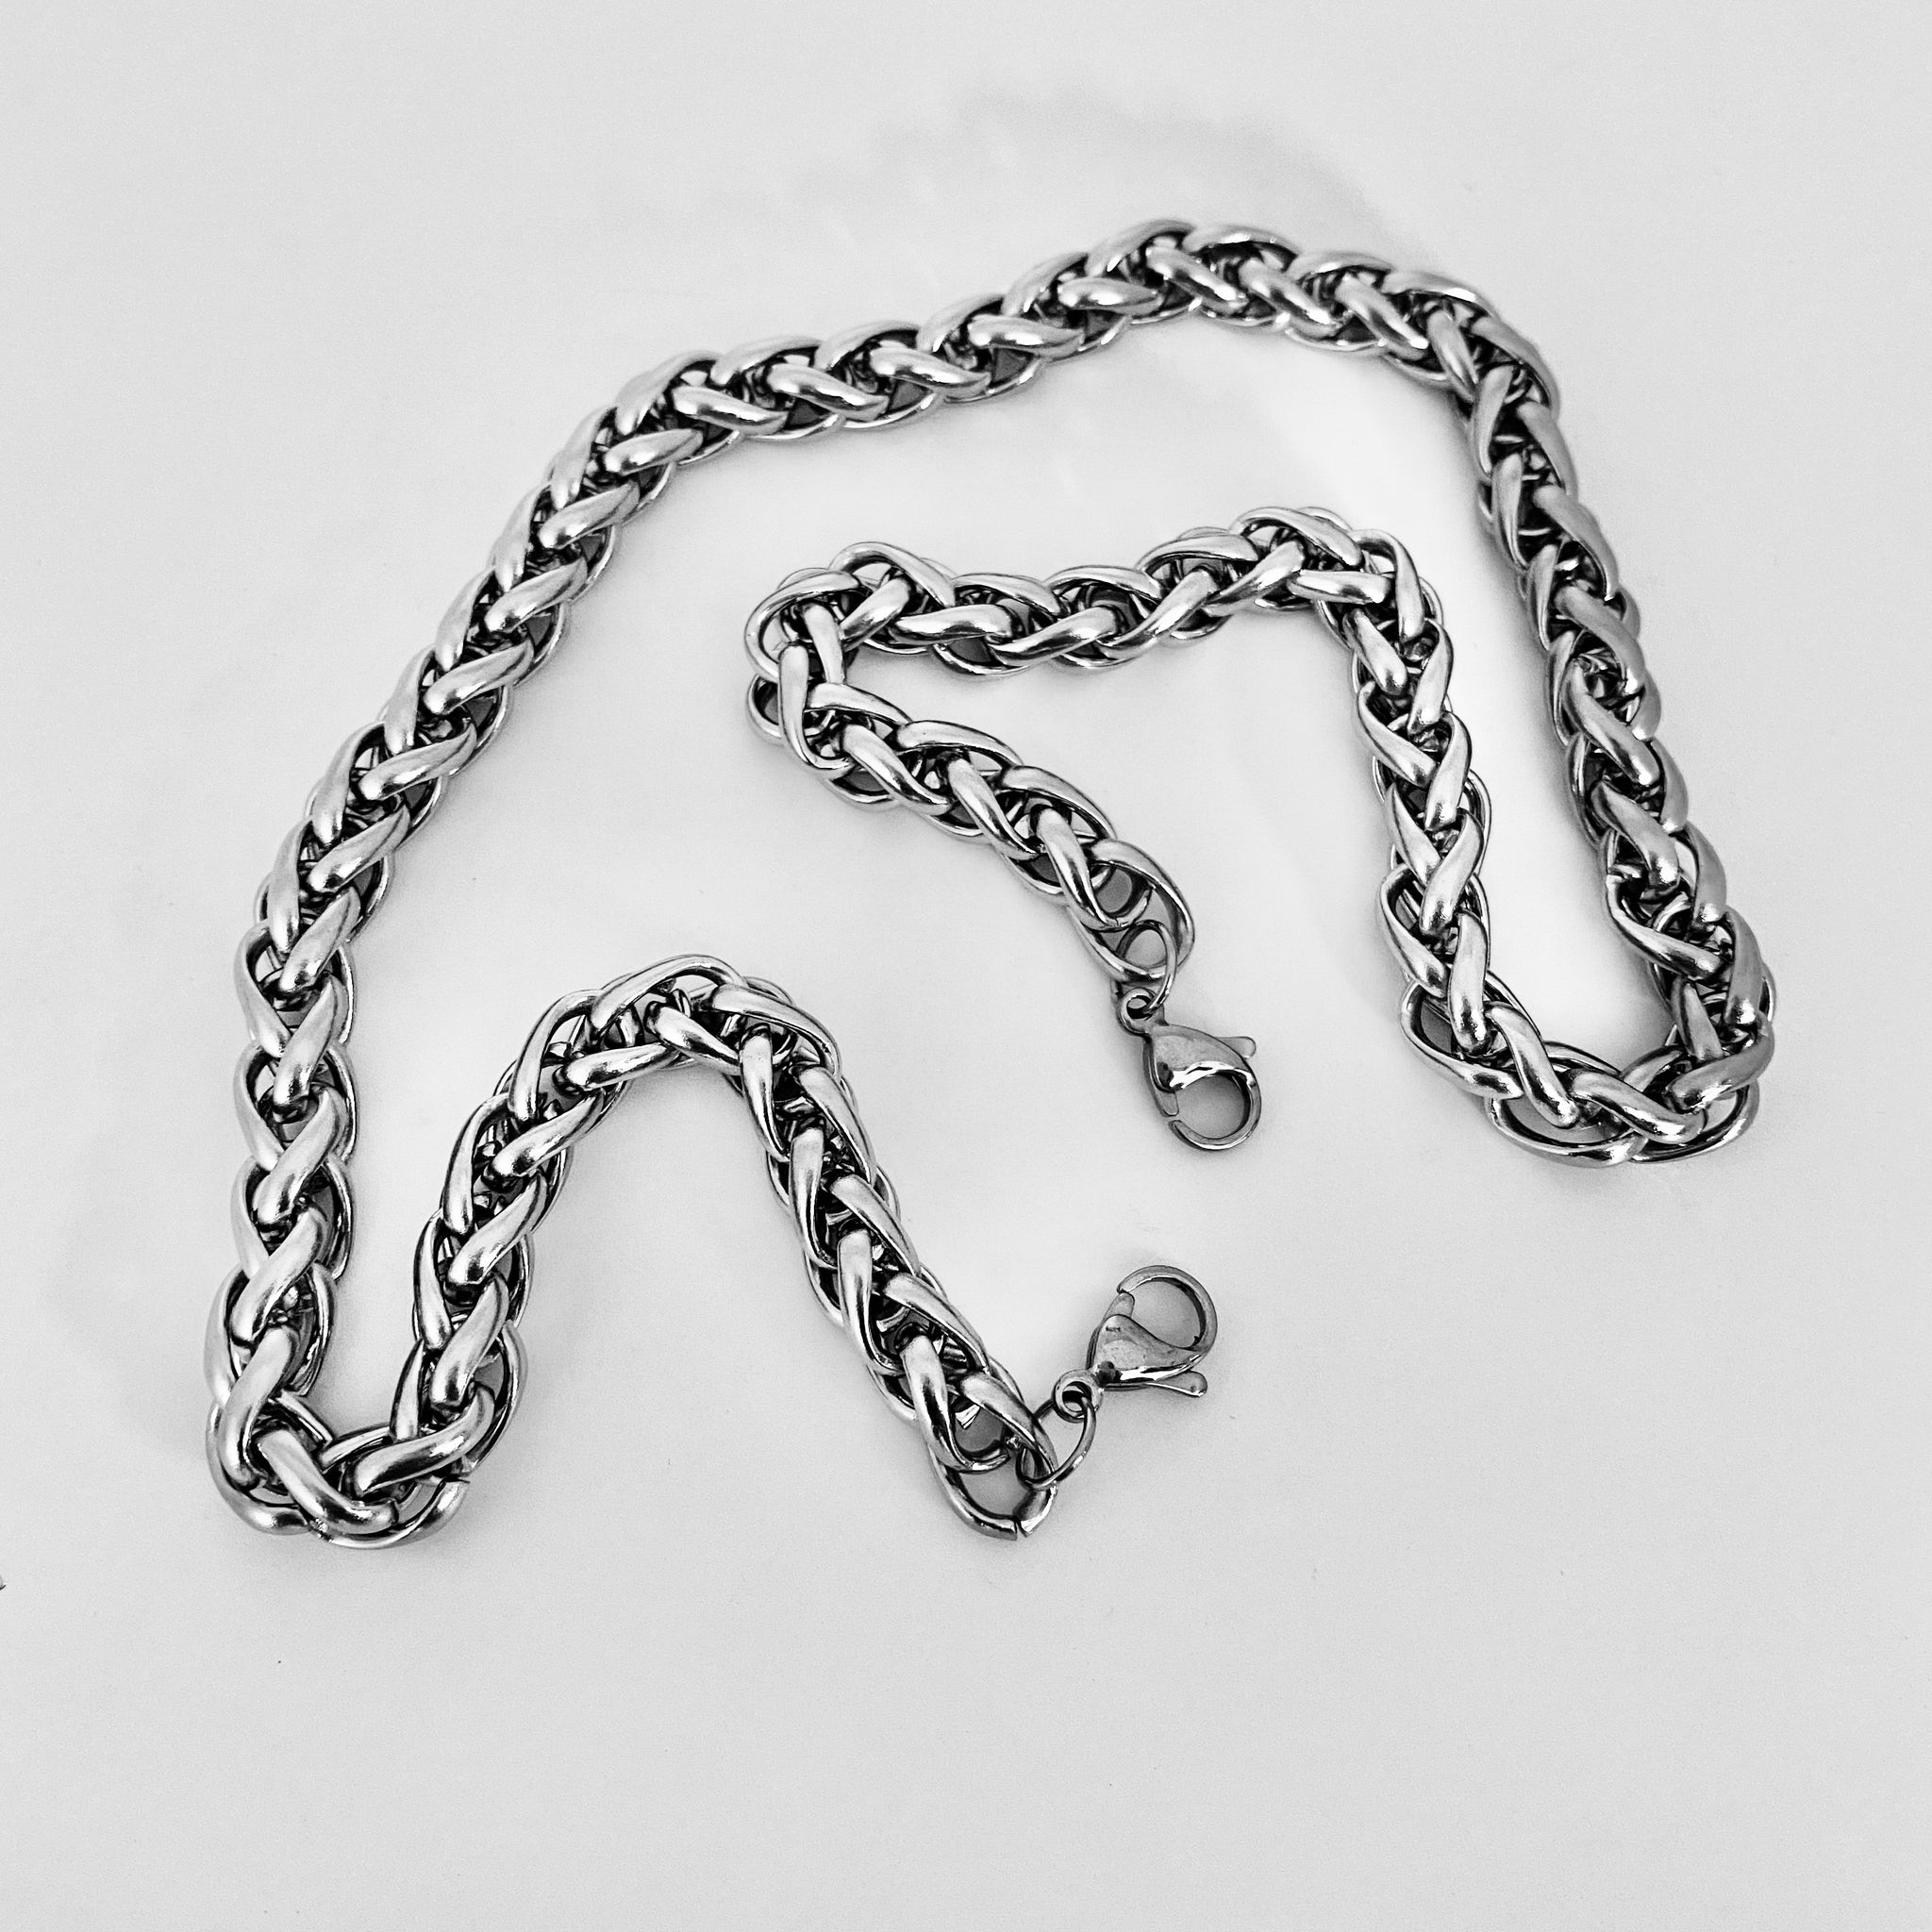 stainless steel mask chain by NYET Jewelry